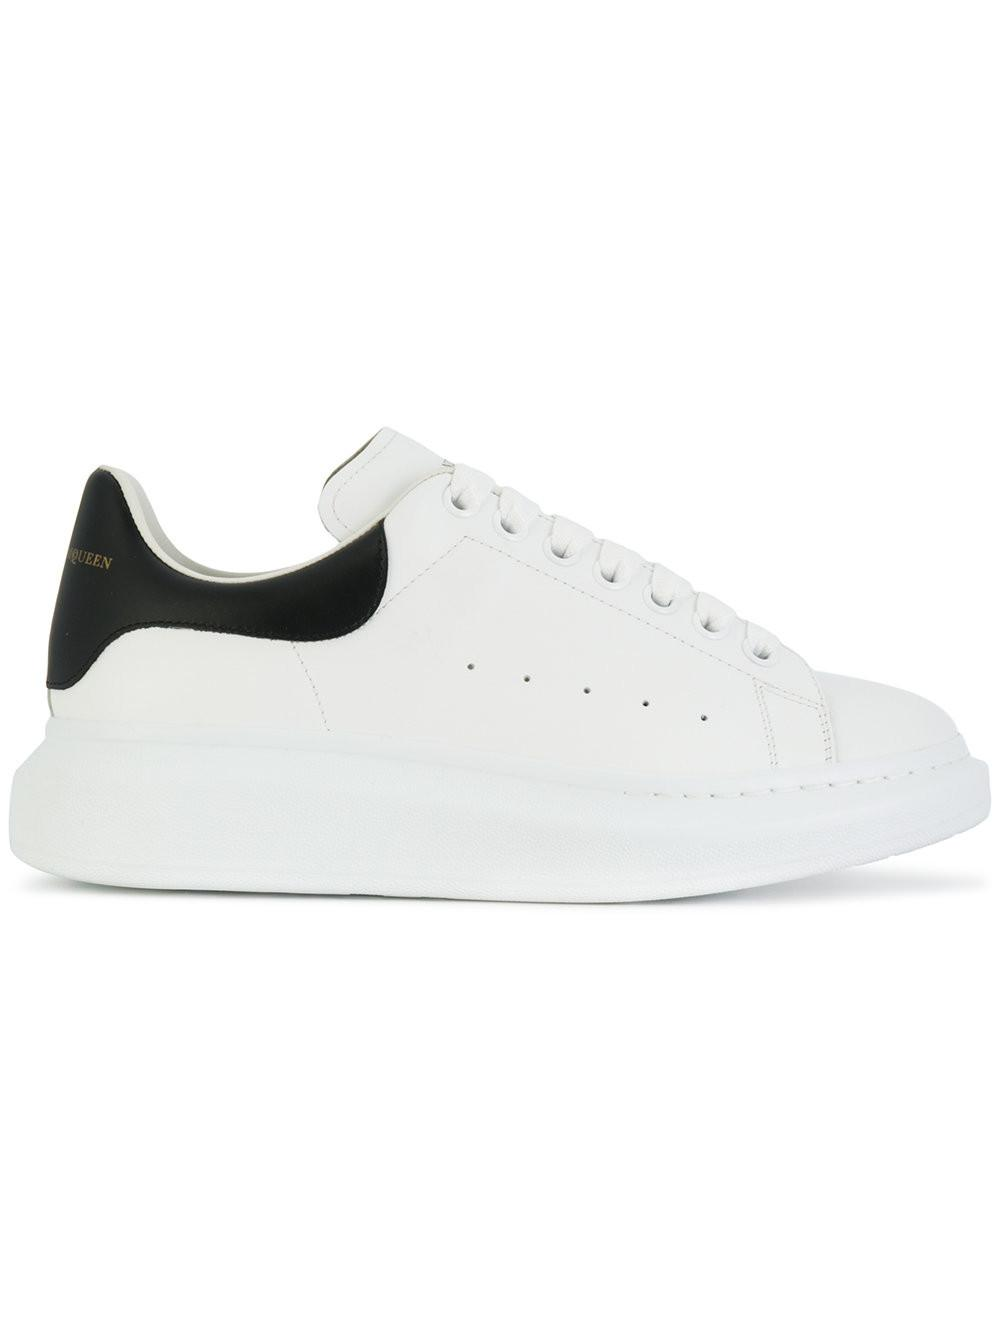 7a5bb89e6d62 Lyst - Alexander Mcqueen Black Oversized Leather Sneakers in White ...